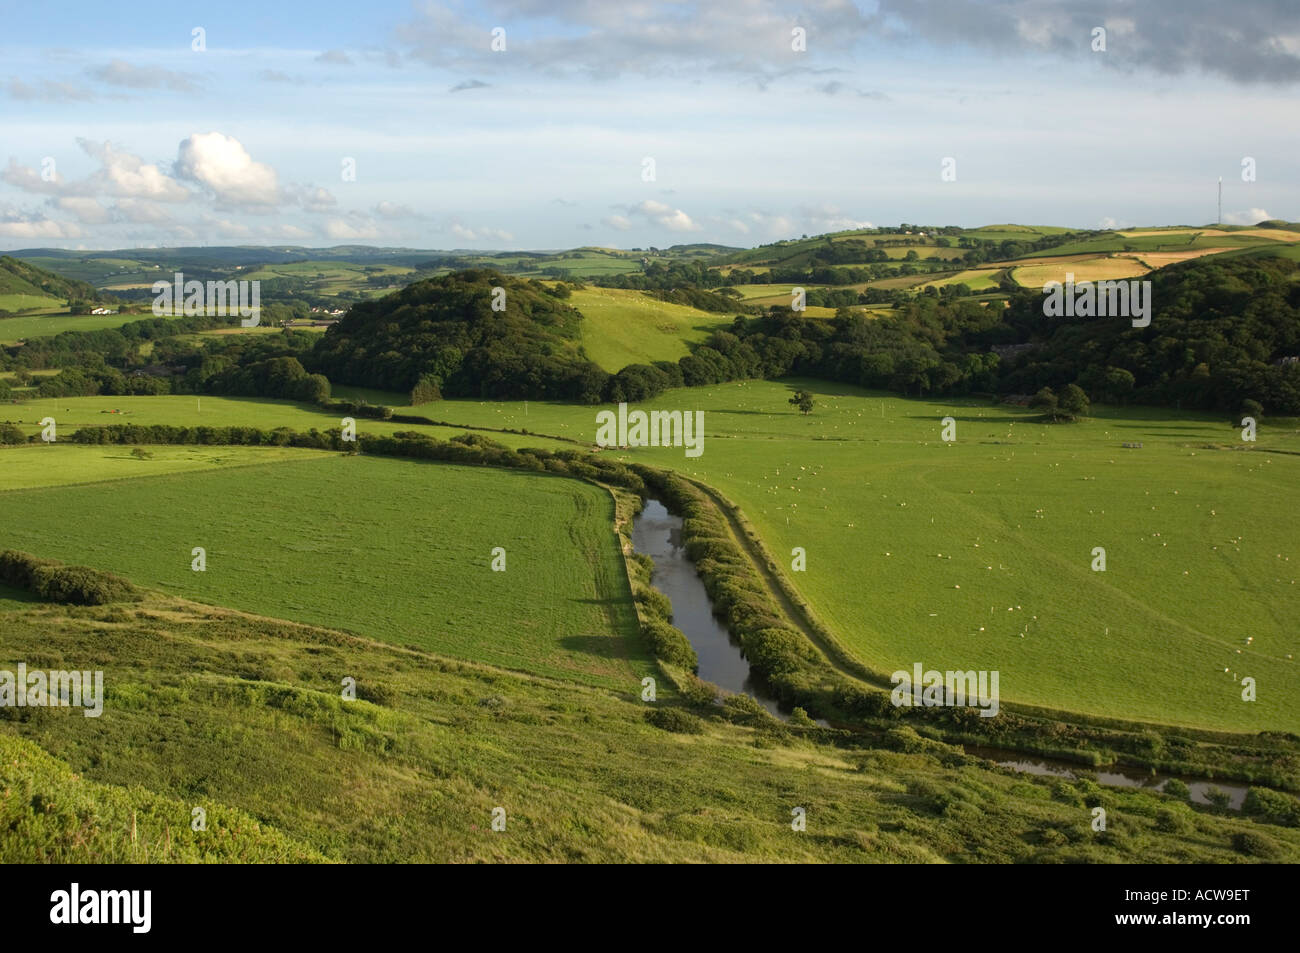 The river Ystwyth seen from Pen Dinas iron age hillfort aberystwyth ceredigion west wales - flowing through green - Stock Image